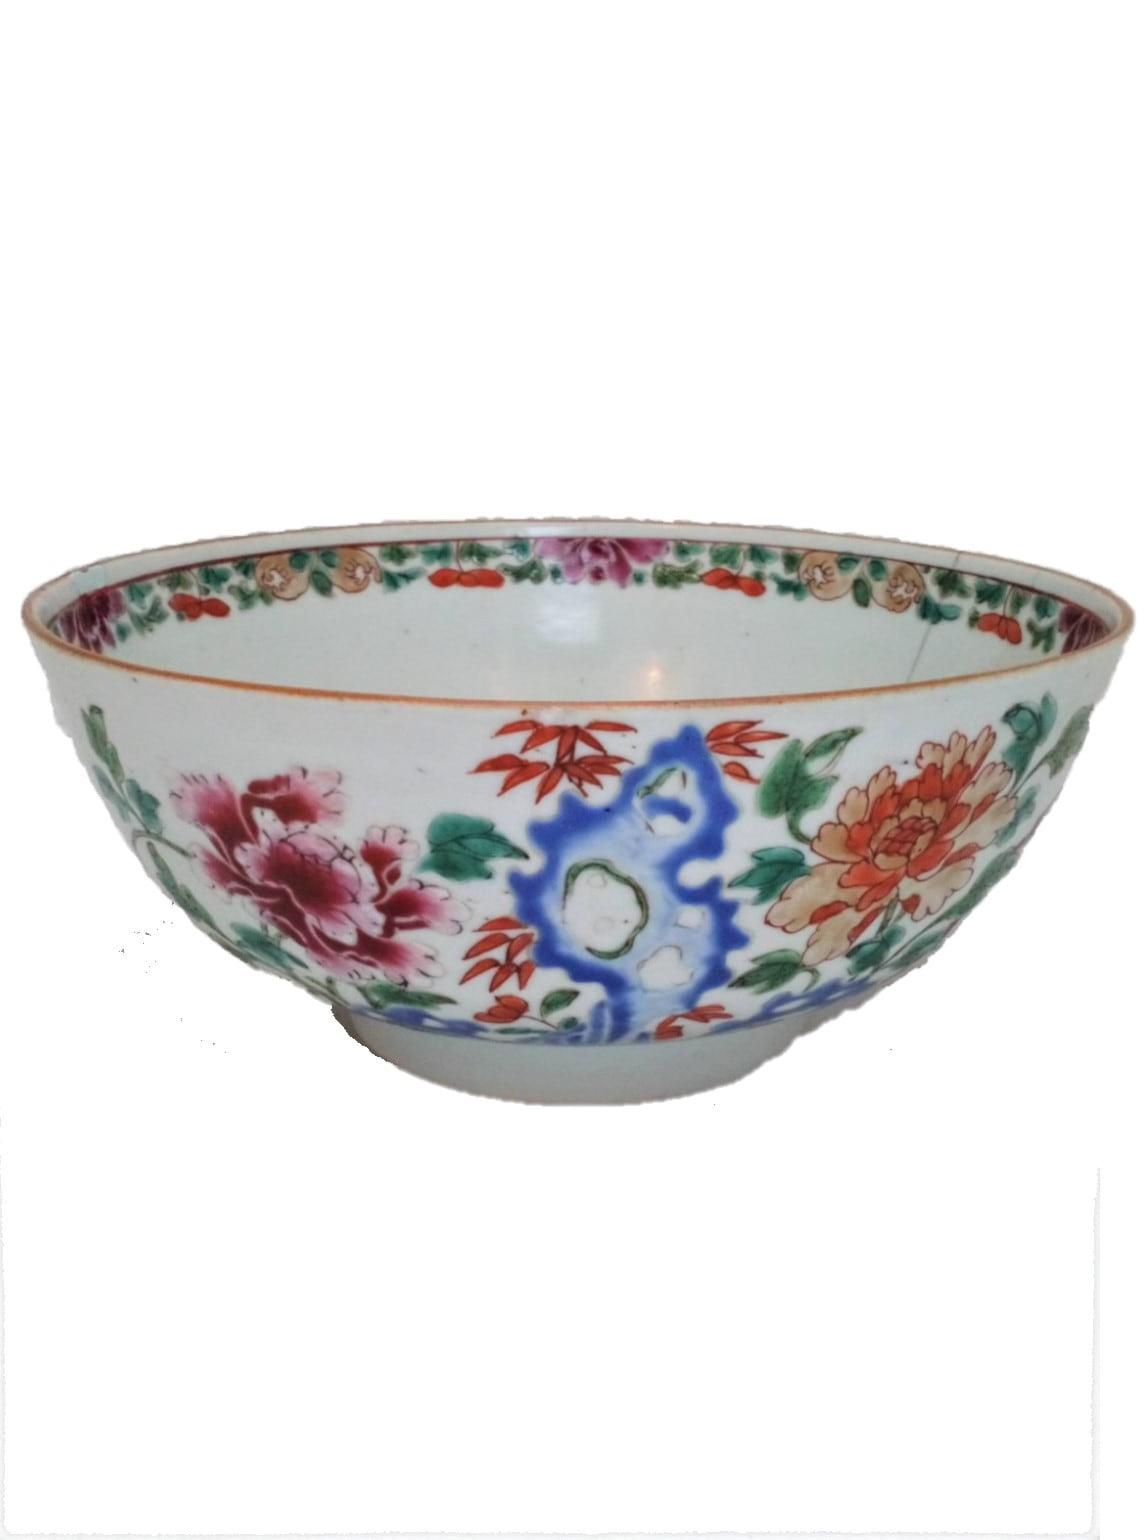 A beautiful antique Qing dynasty 清代 18th Century Kangxi 康熙 era Chinese Porcelain Bowl decorated in hand painted enamels in the Famille Rose palette with a hollow blue rock, peonies, bamboo and Lingzhi fungus, circa 1710.